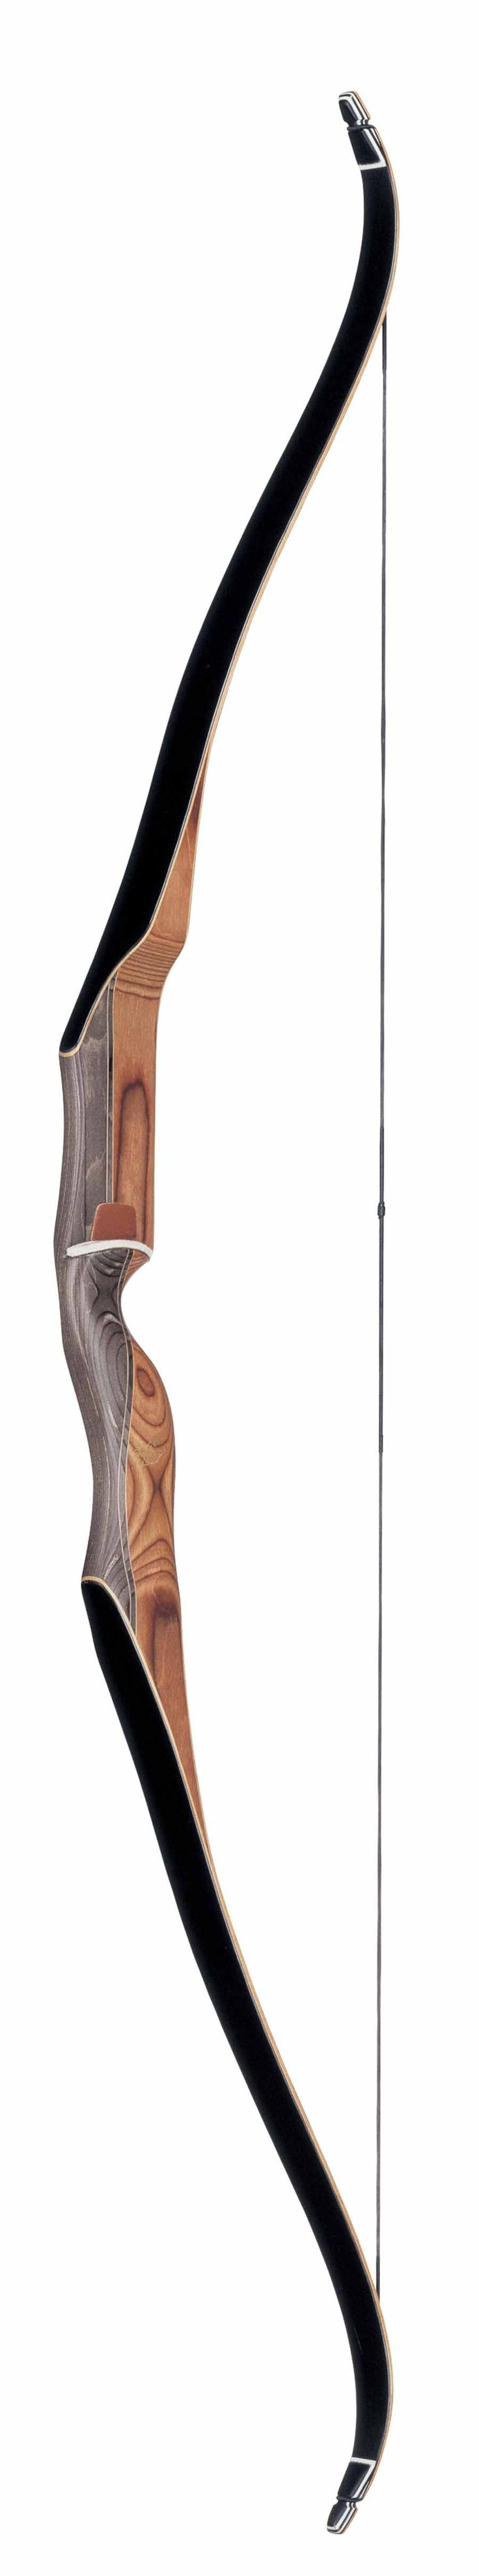 A Bear Recurve Bow, come in and see our selection of Bear Recurve Bows.